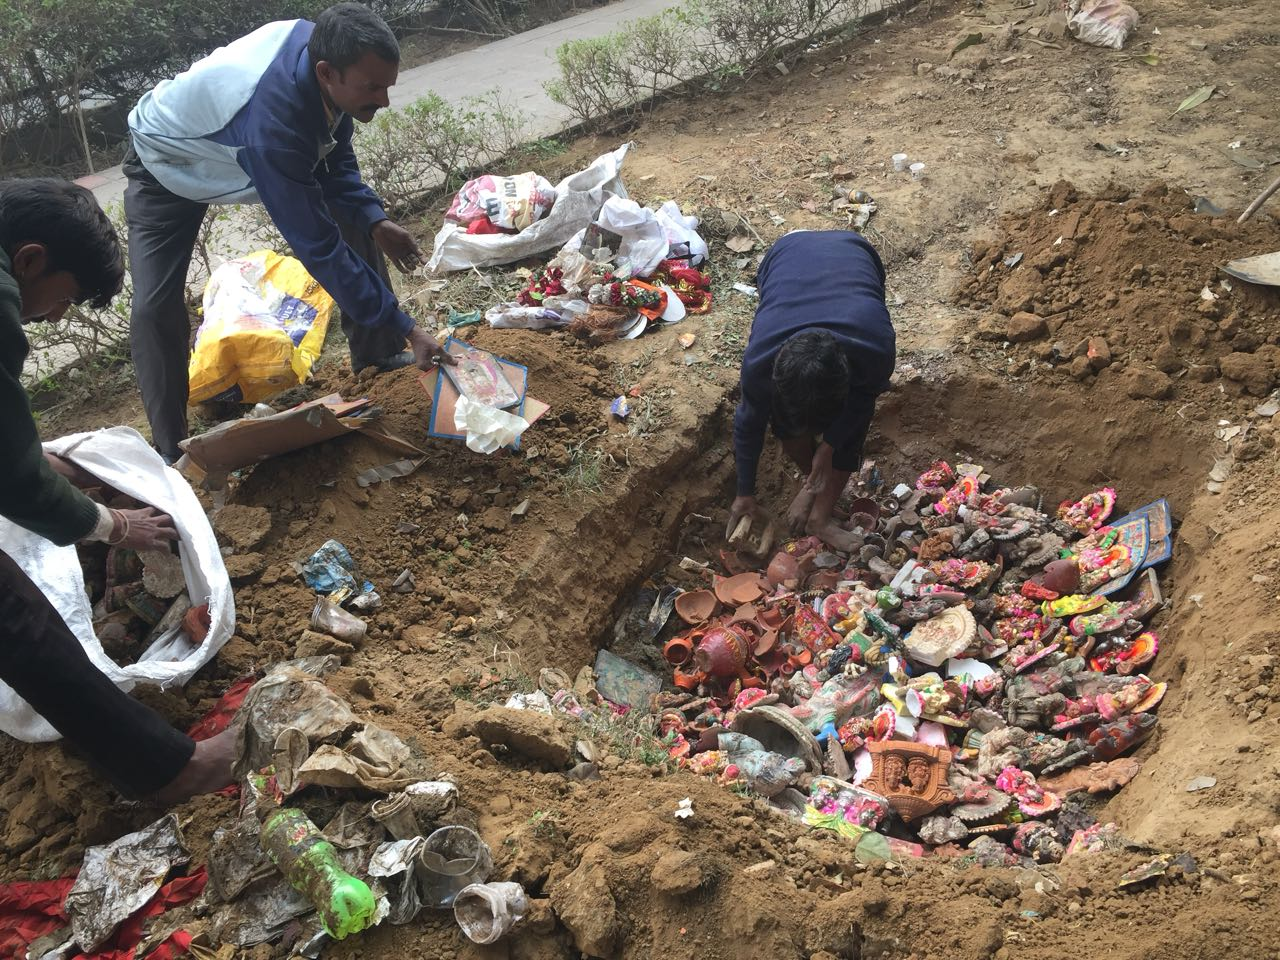 Indirapuram residents rescue abandoned 'gods' left out in the open to decay